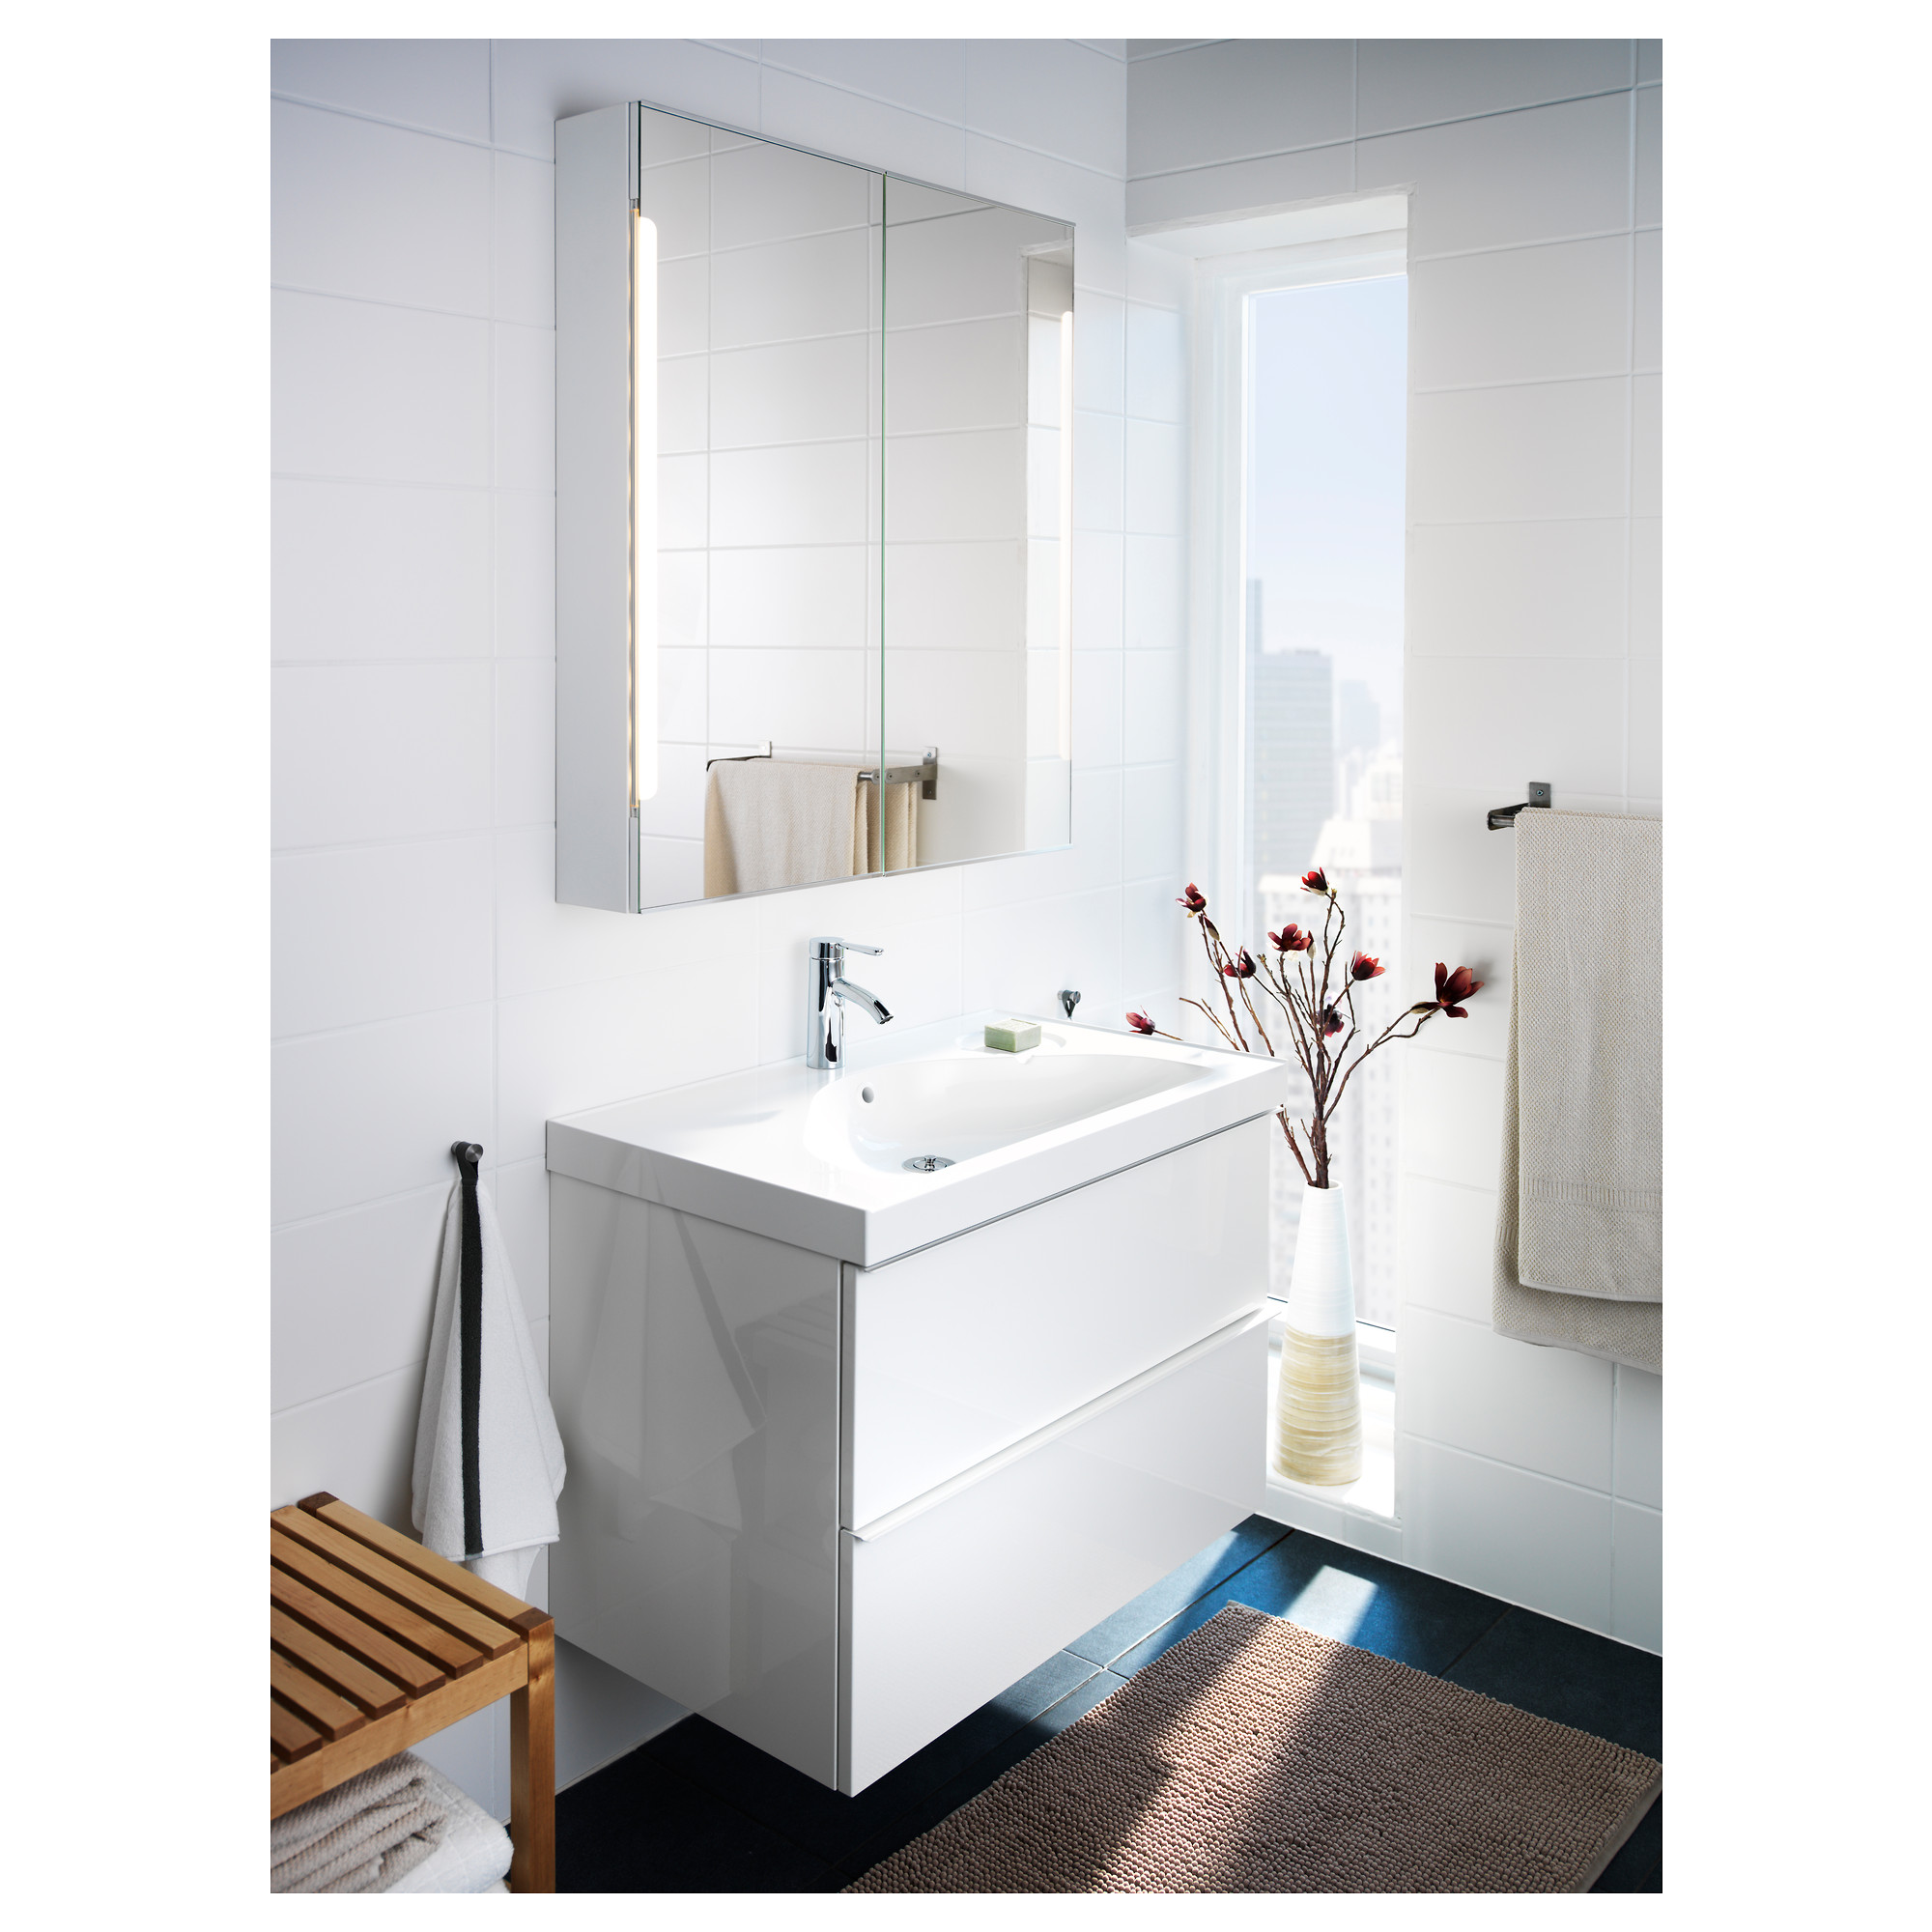 Bathroom mirror cabinets ikea - Storjorm Mirror Cabinet W 2 Doors Light 31 1 2x5 1 2x37 3 4 Ikea